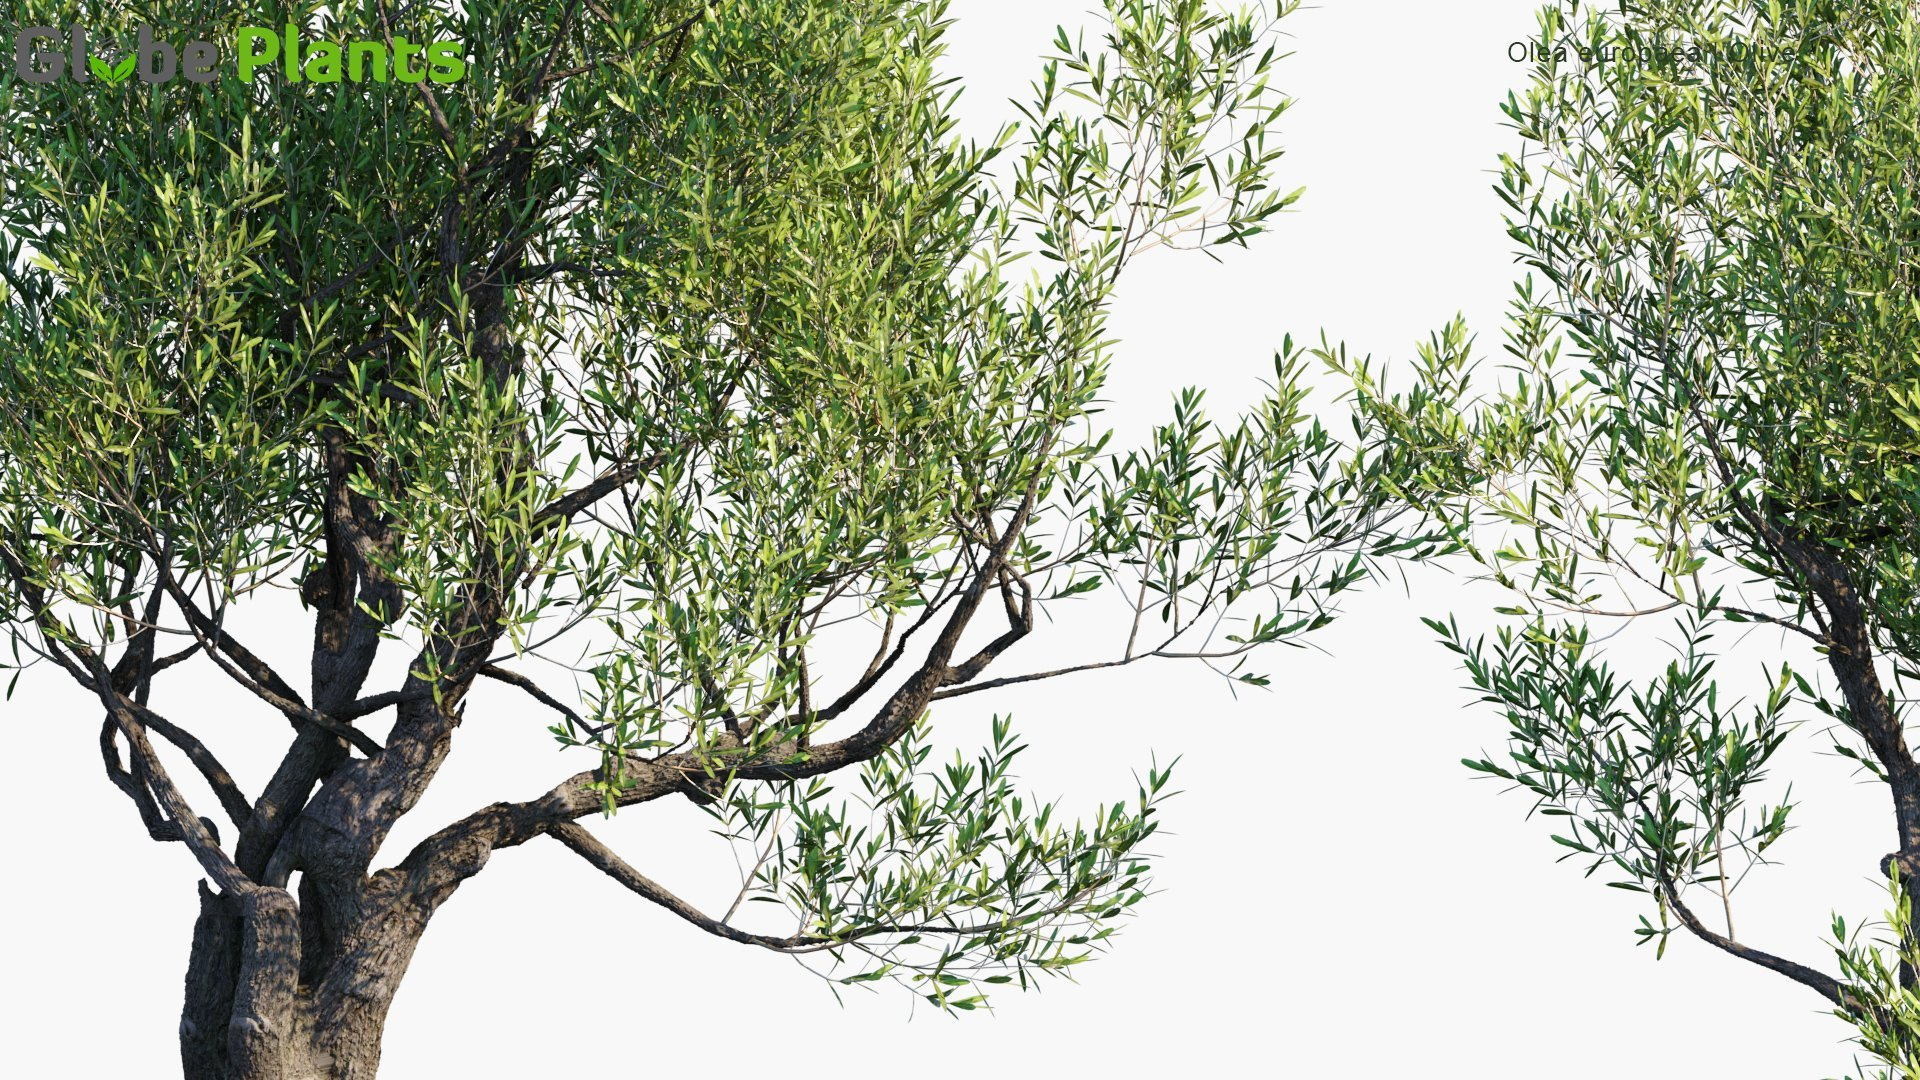 3D Plant Model of The Month - Olea Europaea